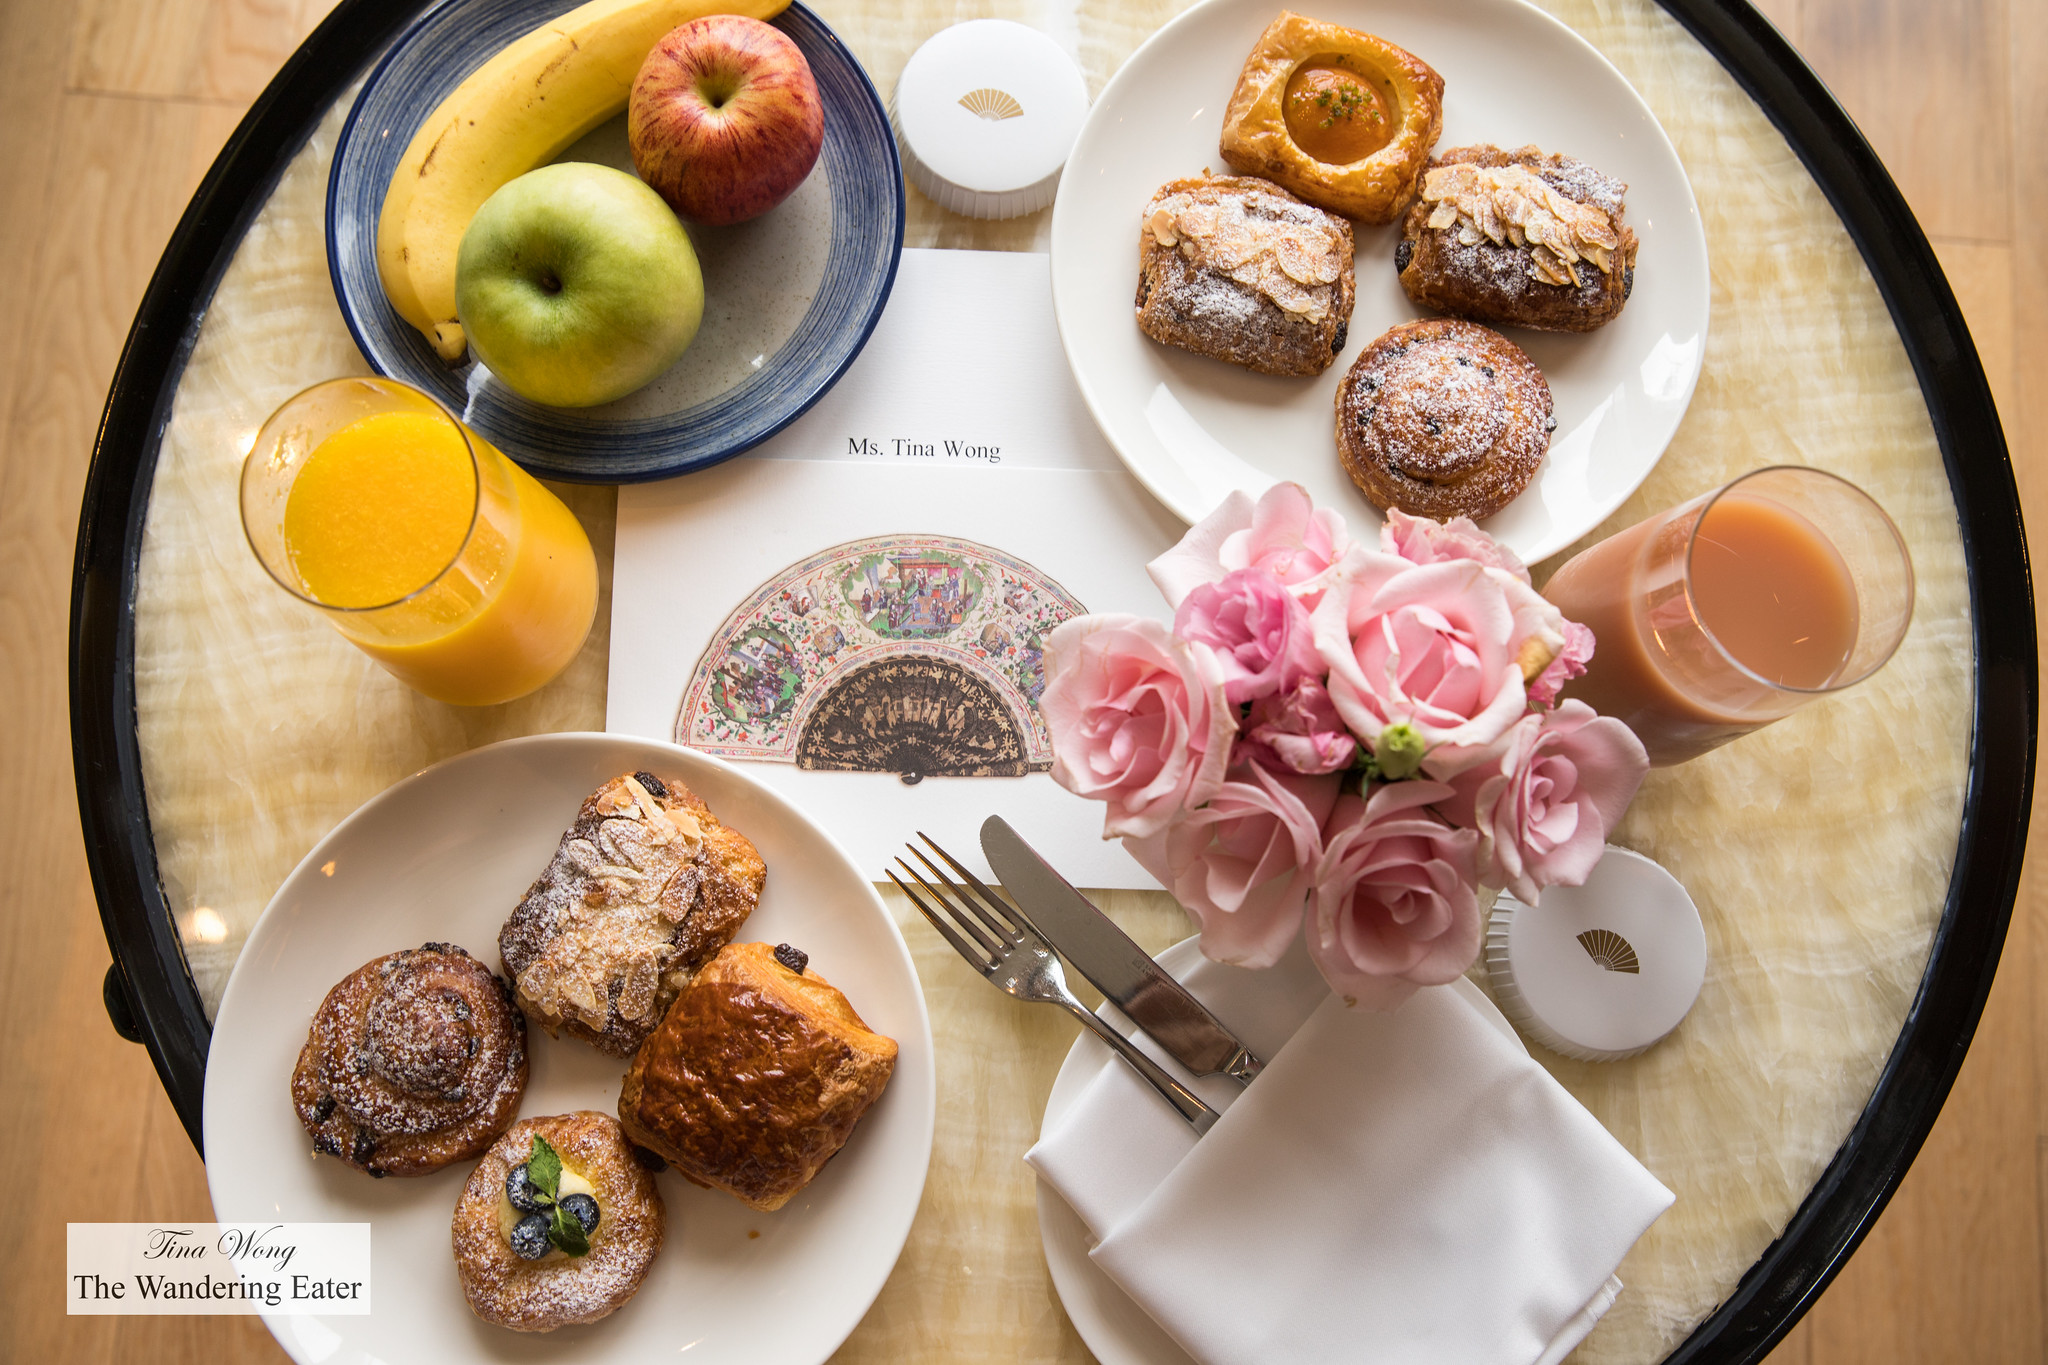 Breakfast pastries and juices at my room